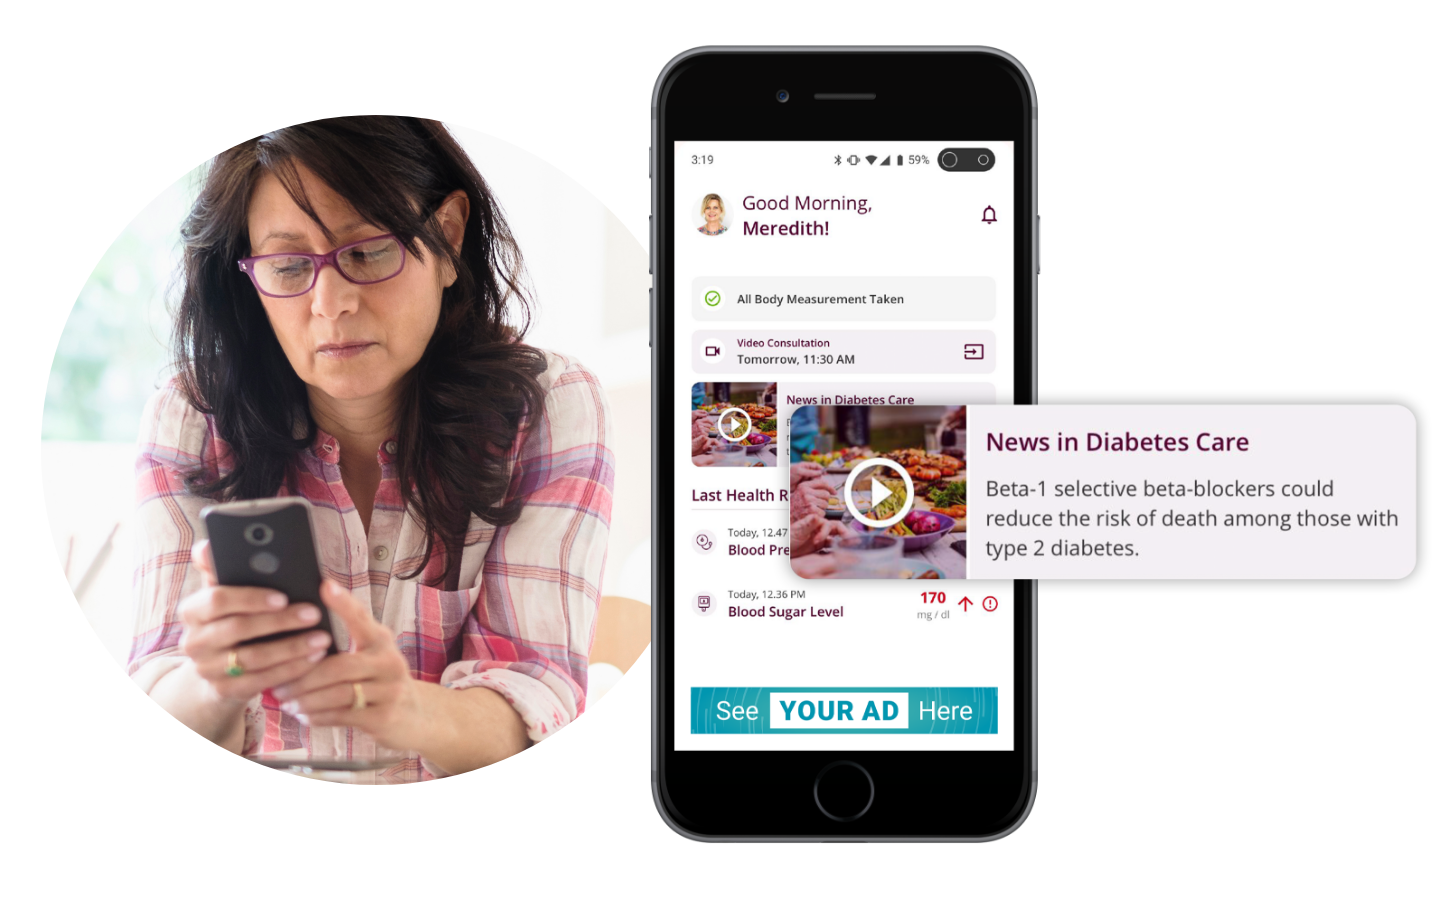 A woman looks at her phone which includes education and communication from her physician about managing diabetes.